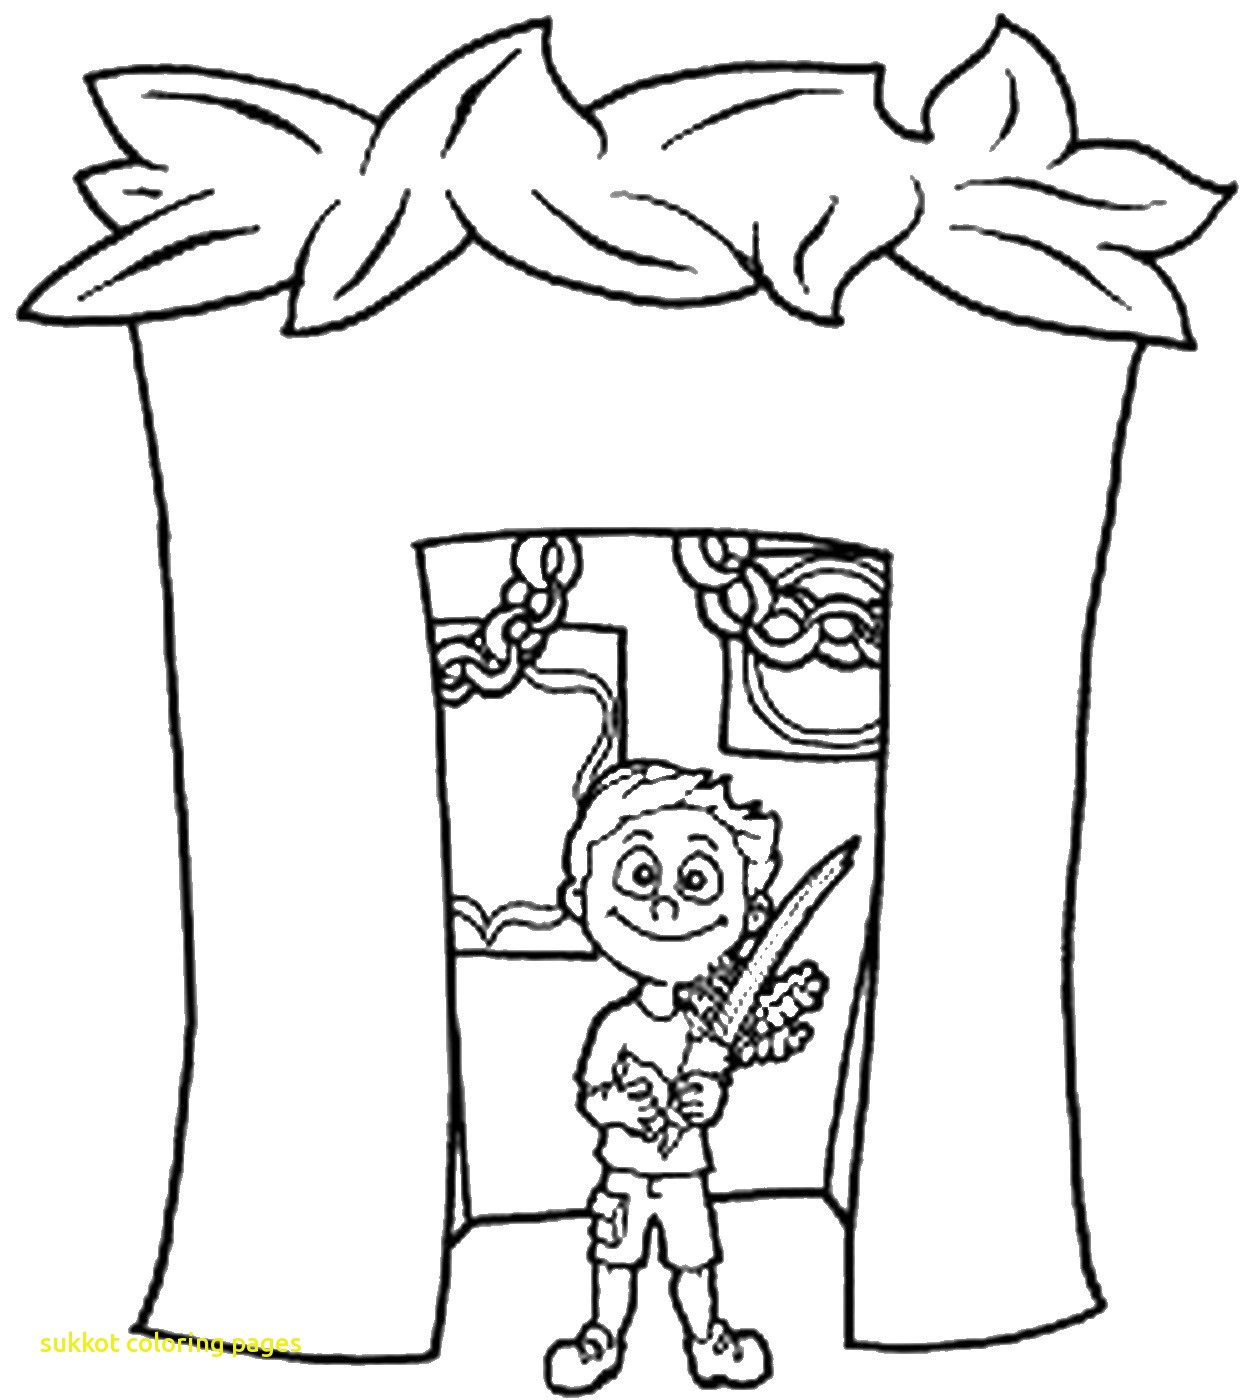 1258x1400 Sukkot Coloring Pages